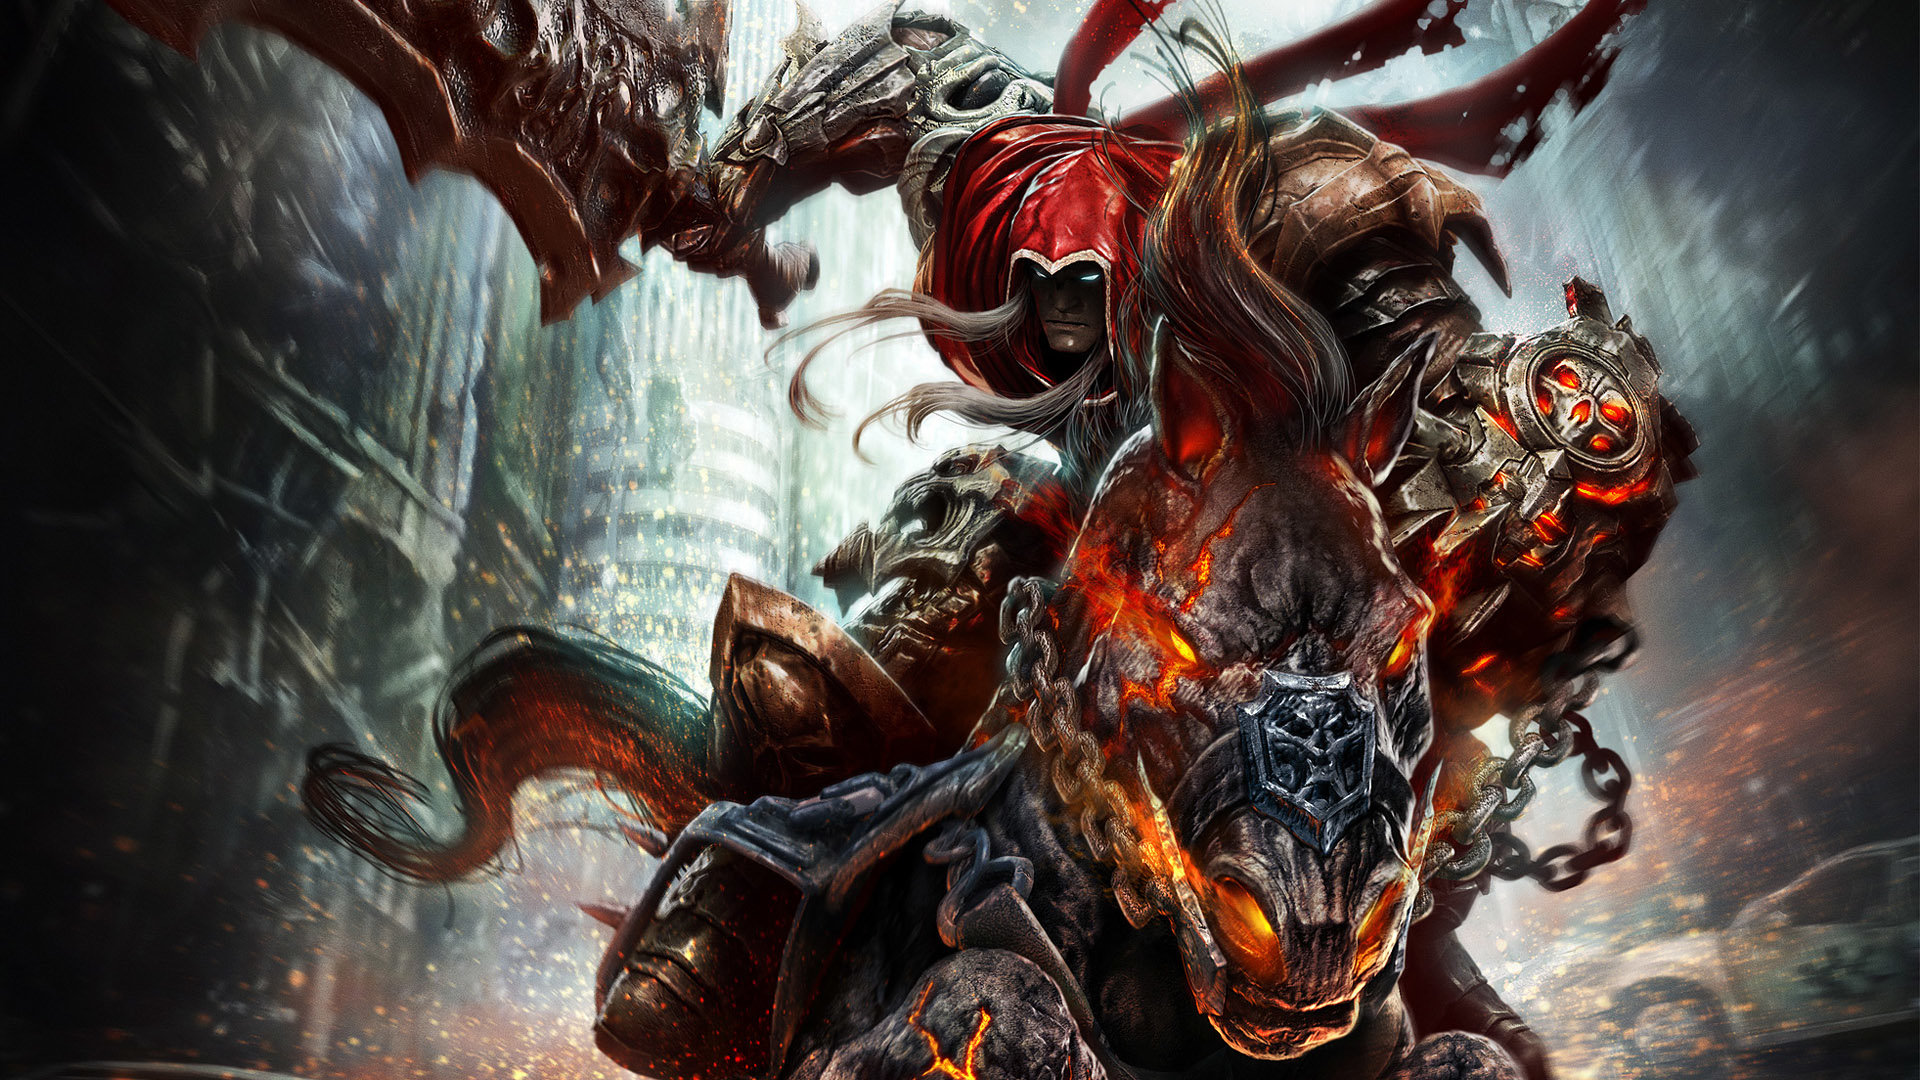 Download full hd 1080p Darksiders PC background ID:409842 for free